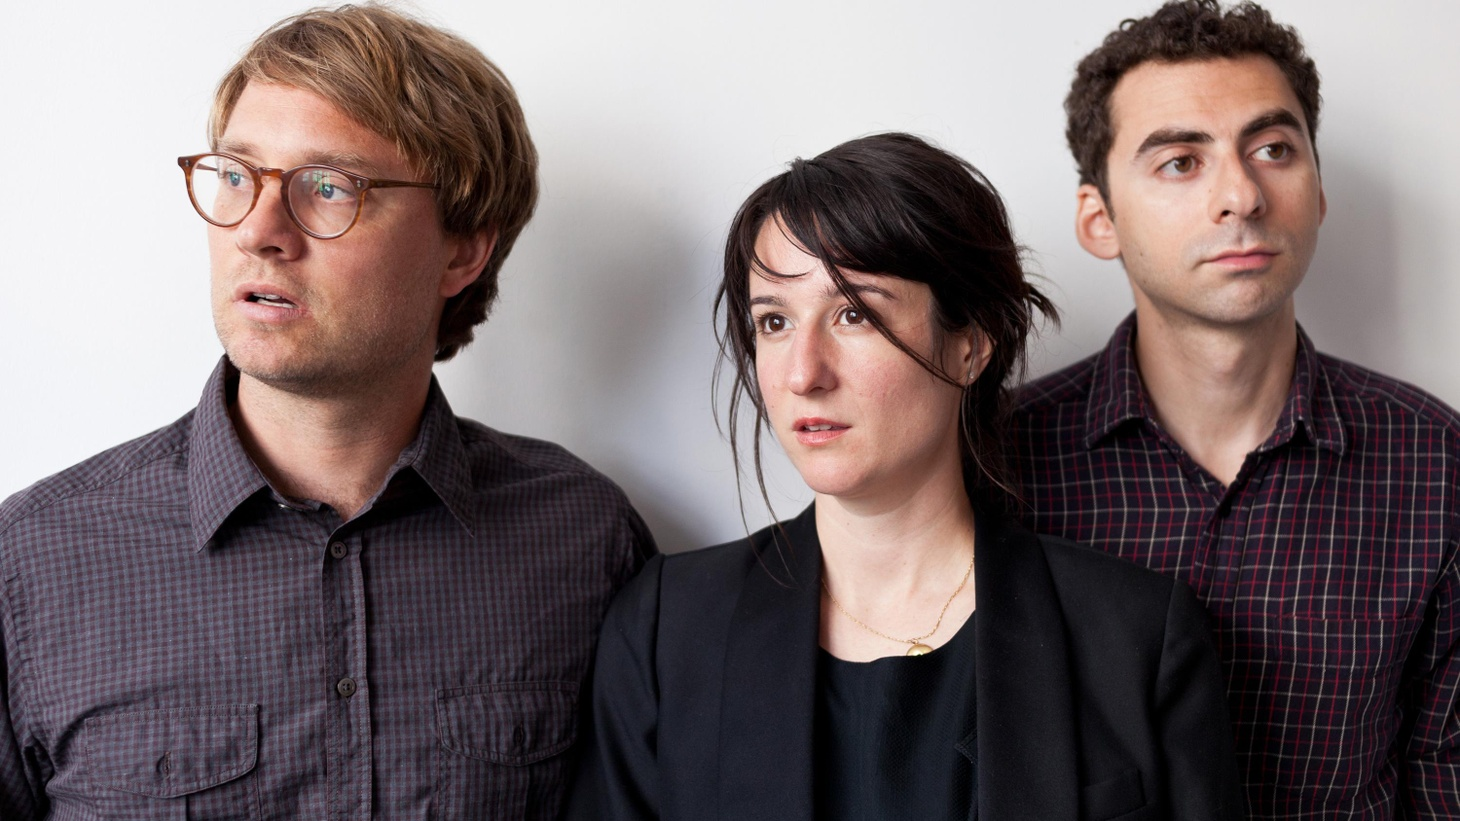 Brooklyn trio Hospitality tap into the darker corners of the human heart on their new album. While it may be dark, it's still sounds peppy...